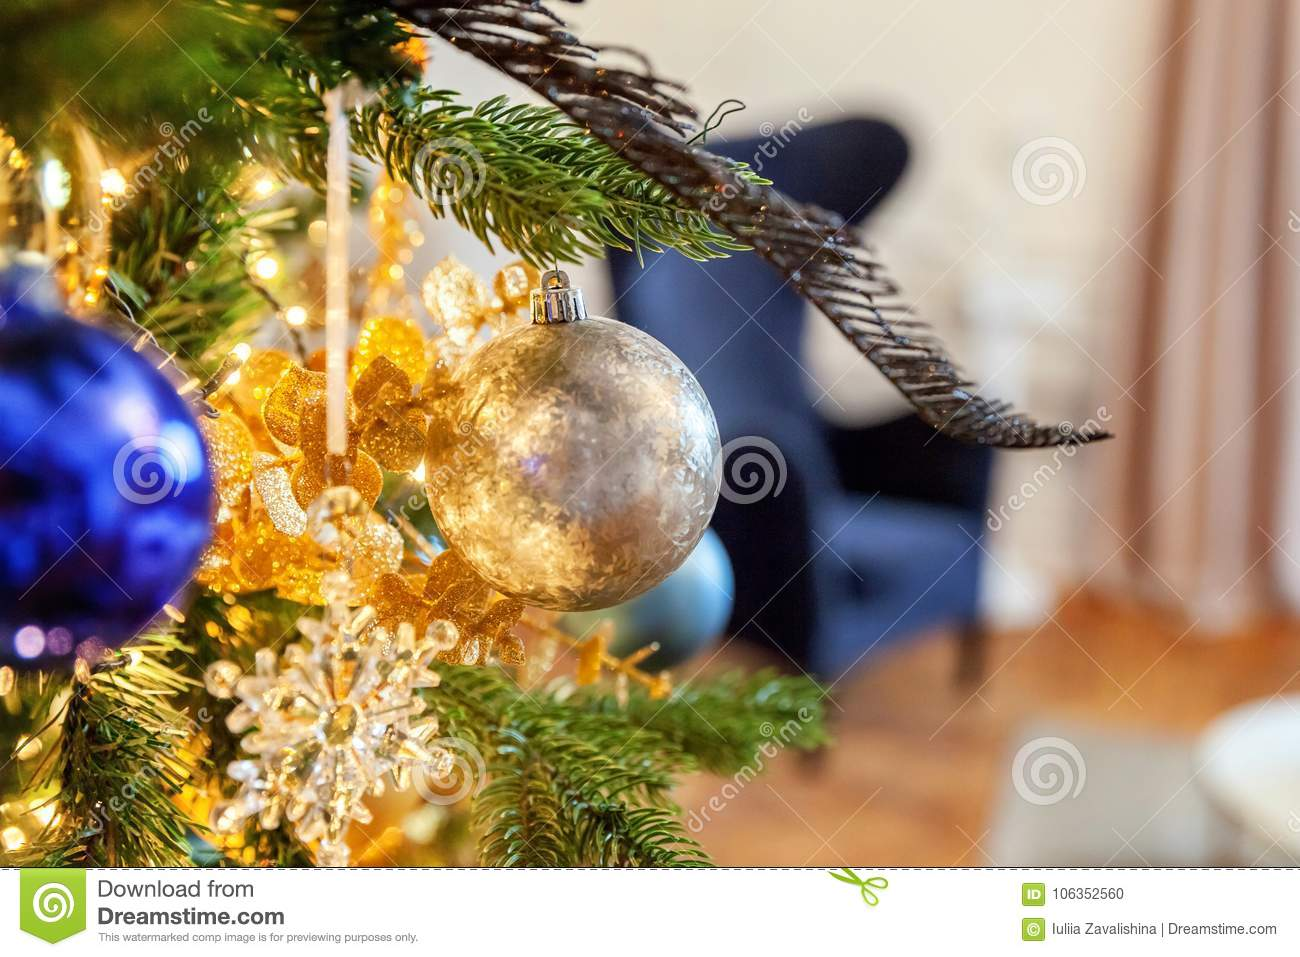 christmas tree with gold and blue decorations - Classic Christmas Tree Decorations